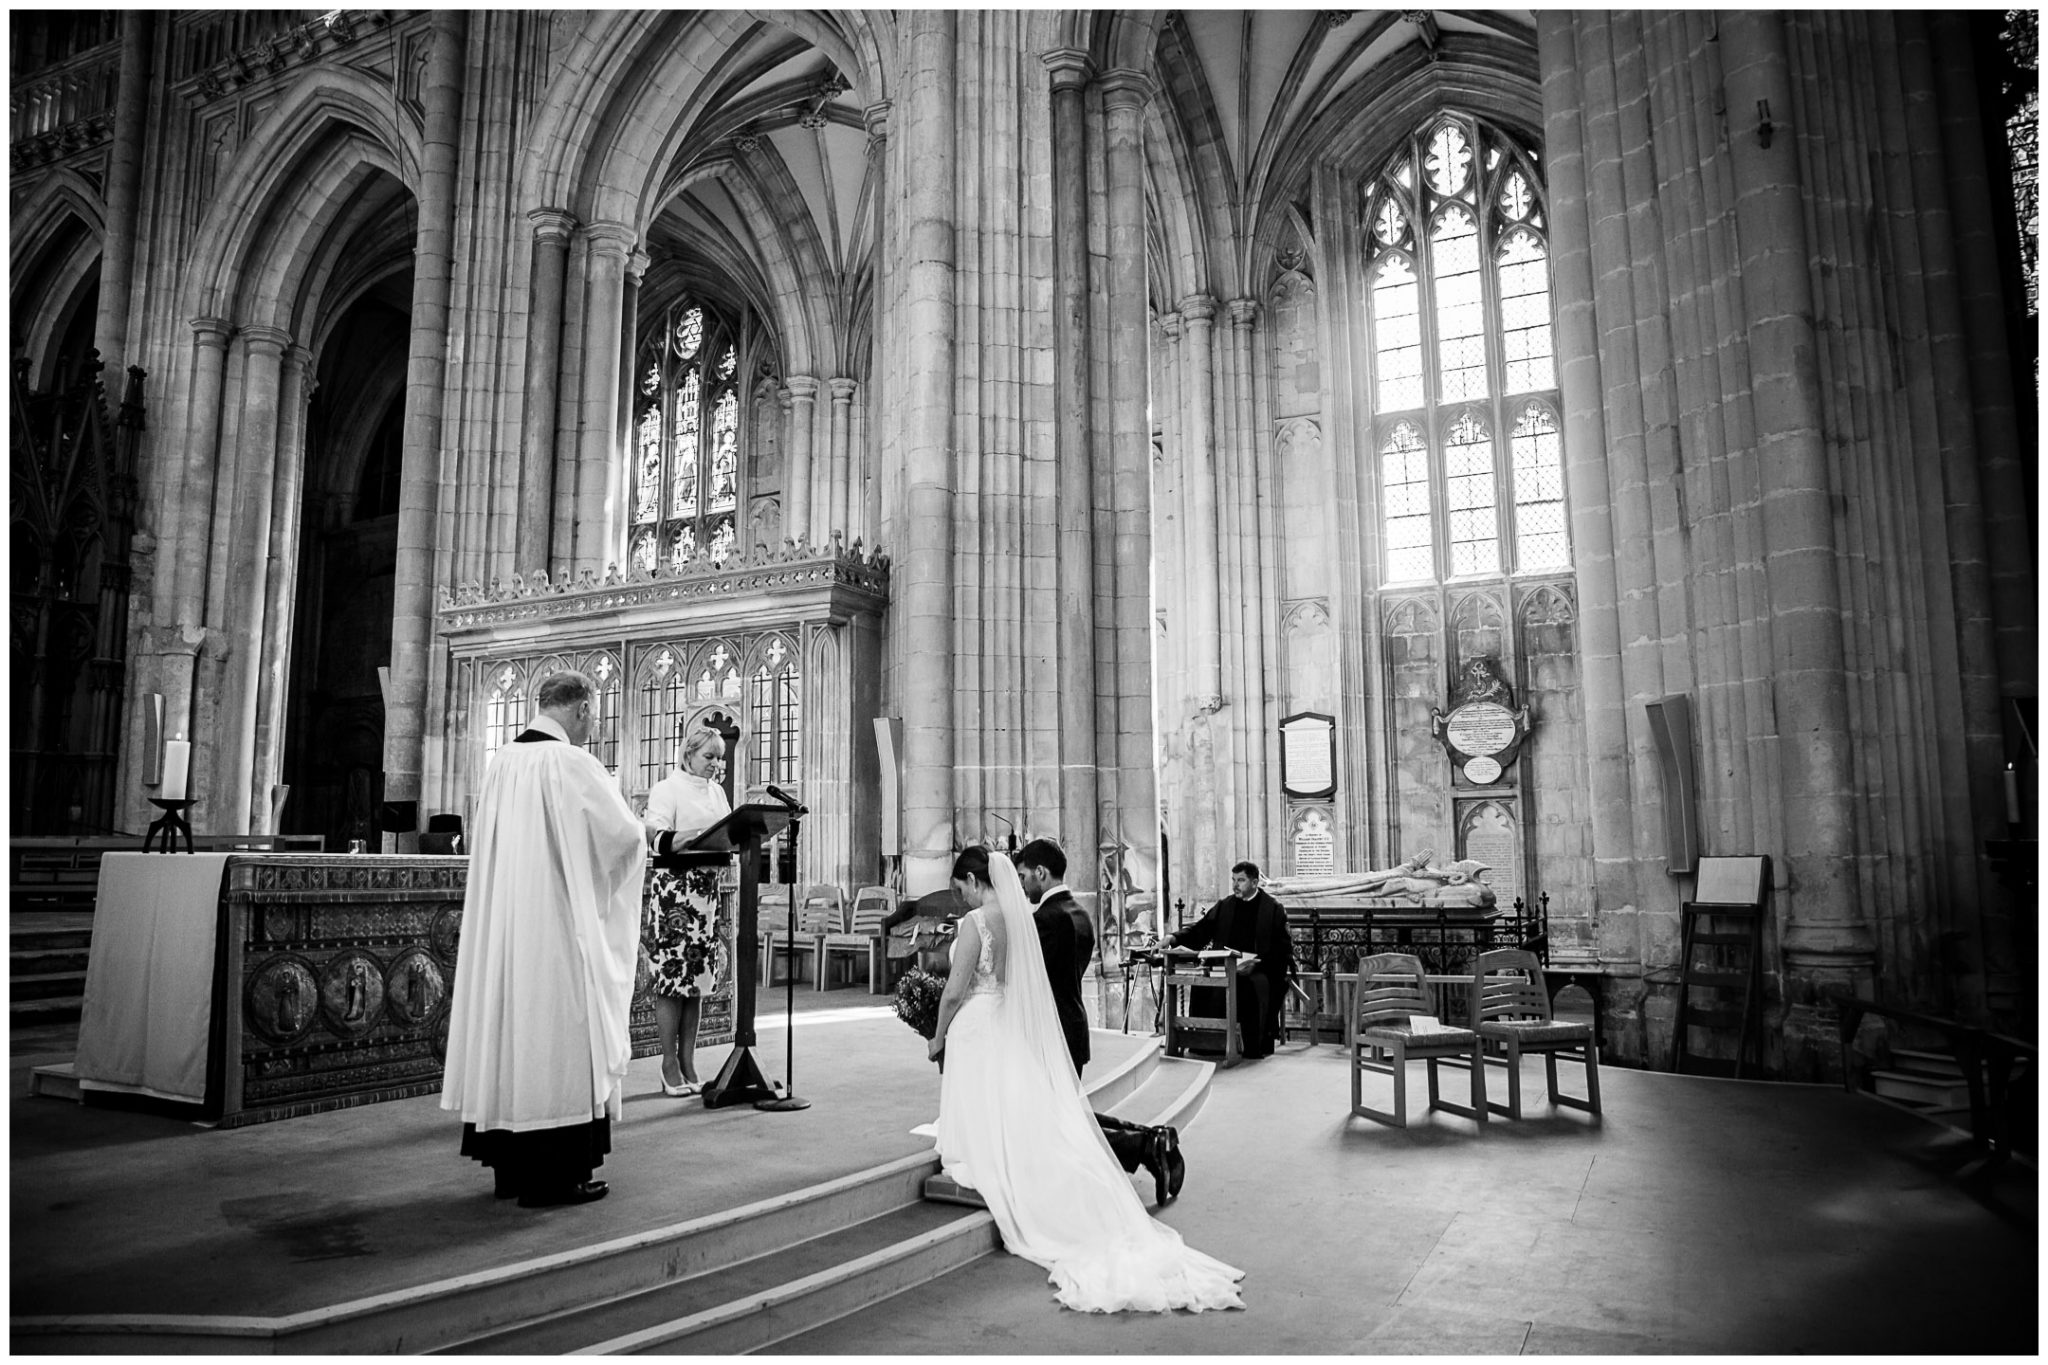 winchester cathedral wedding photography final blessing of the couple